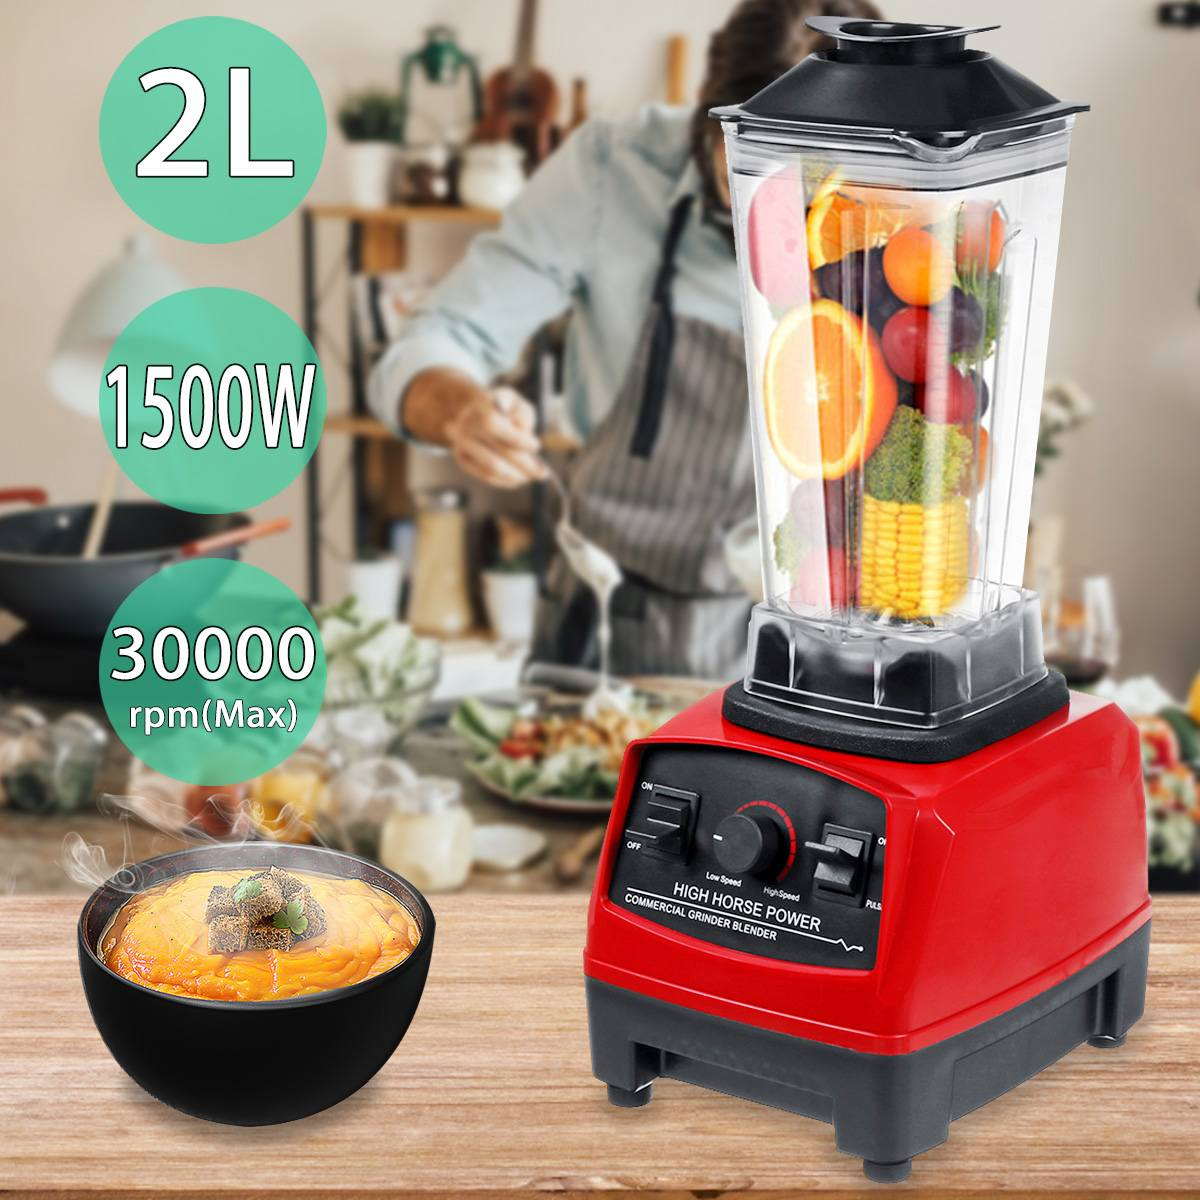 2L 1500W Food Processor Blenders Mixer Juicer Adjustable Speed 6 Steel Blades Heavy Duty Fruit Juicer Food Ice Crusher Smoothies